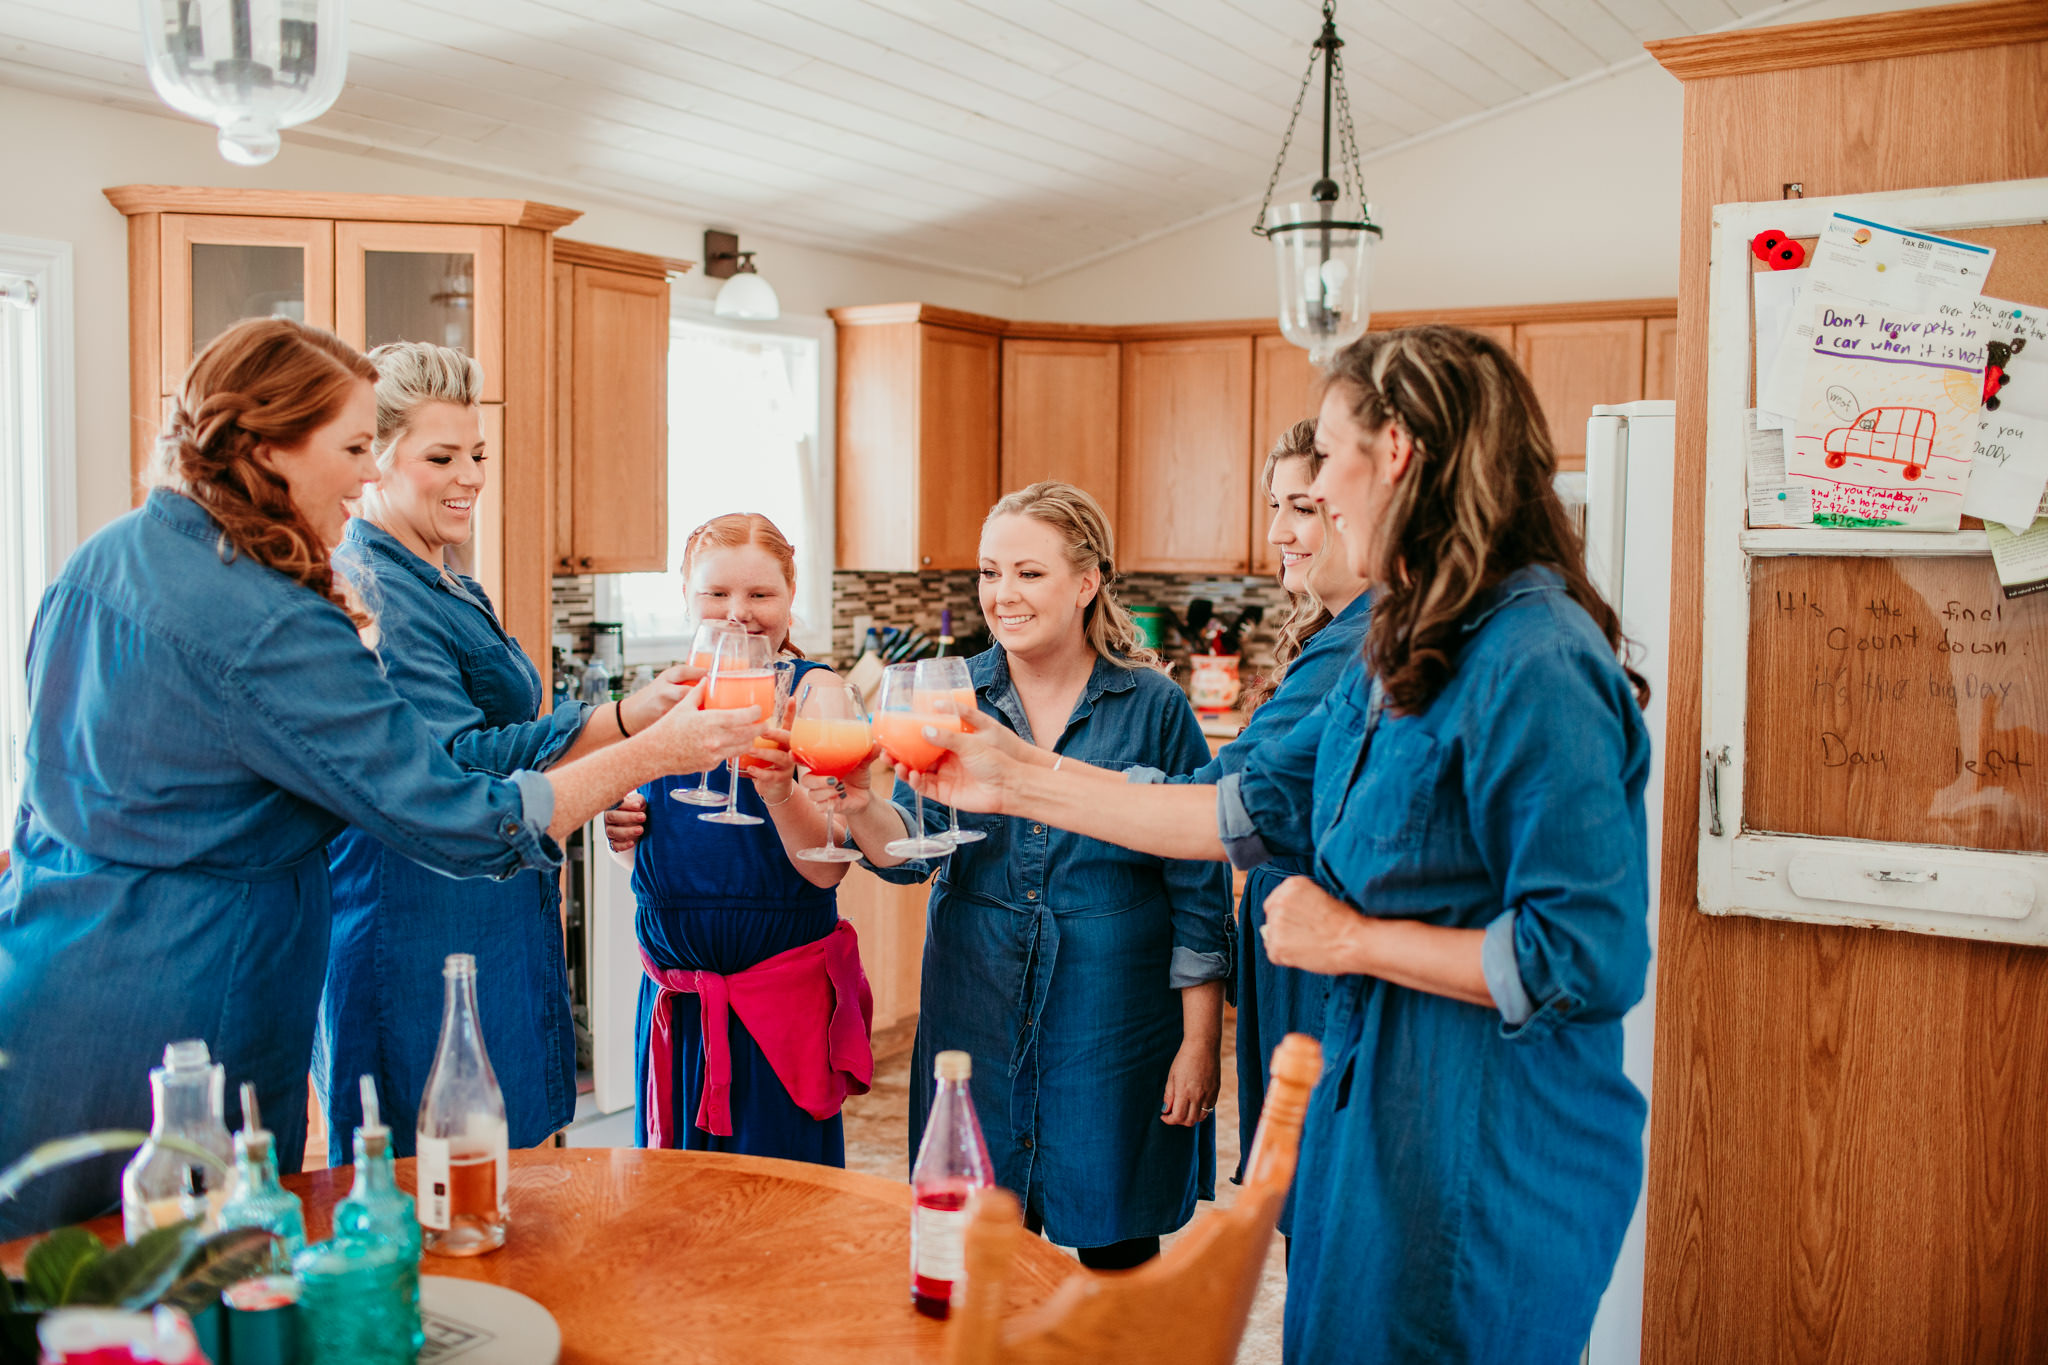 bridesmaids standing with bride doing a cheers before their wedding day